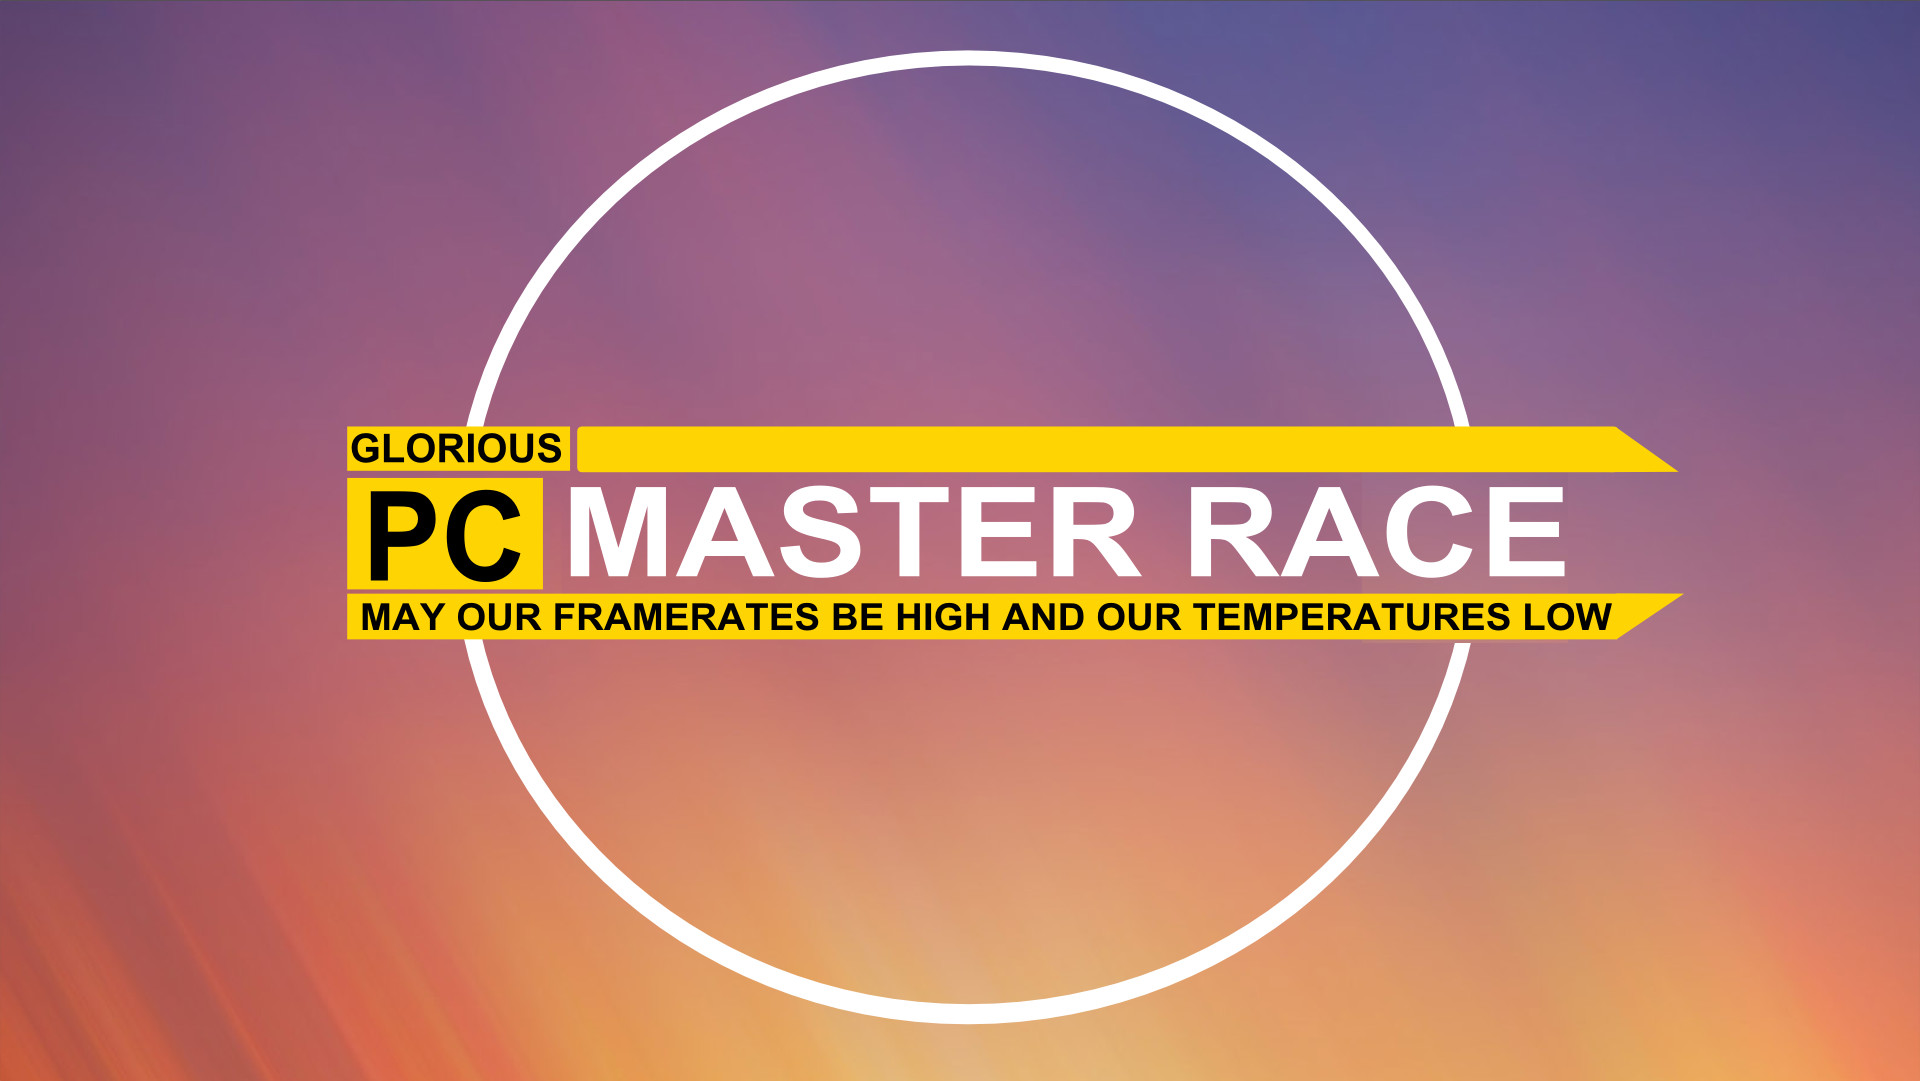 My PC master race wallpaper collection (Updated with 10 new images) :  pcmasterrace